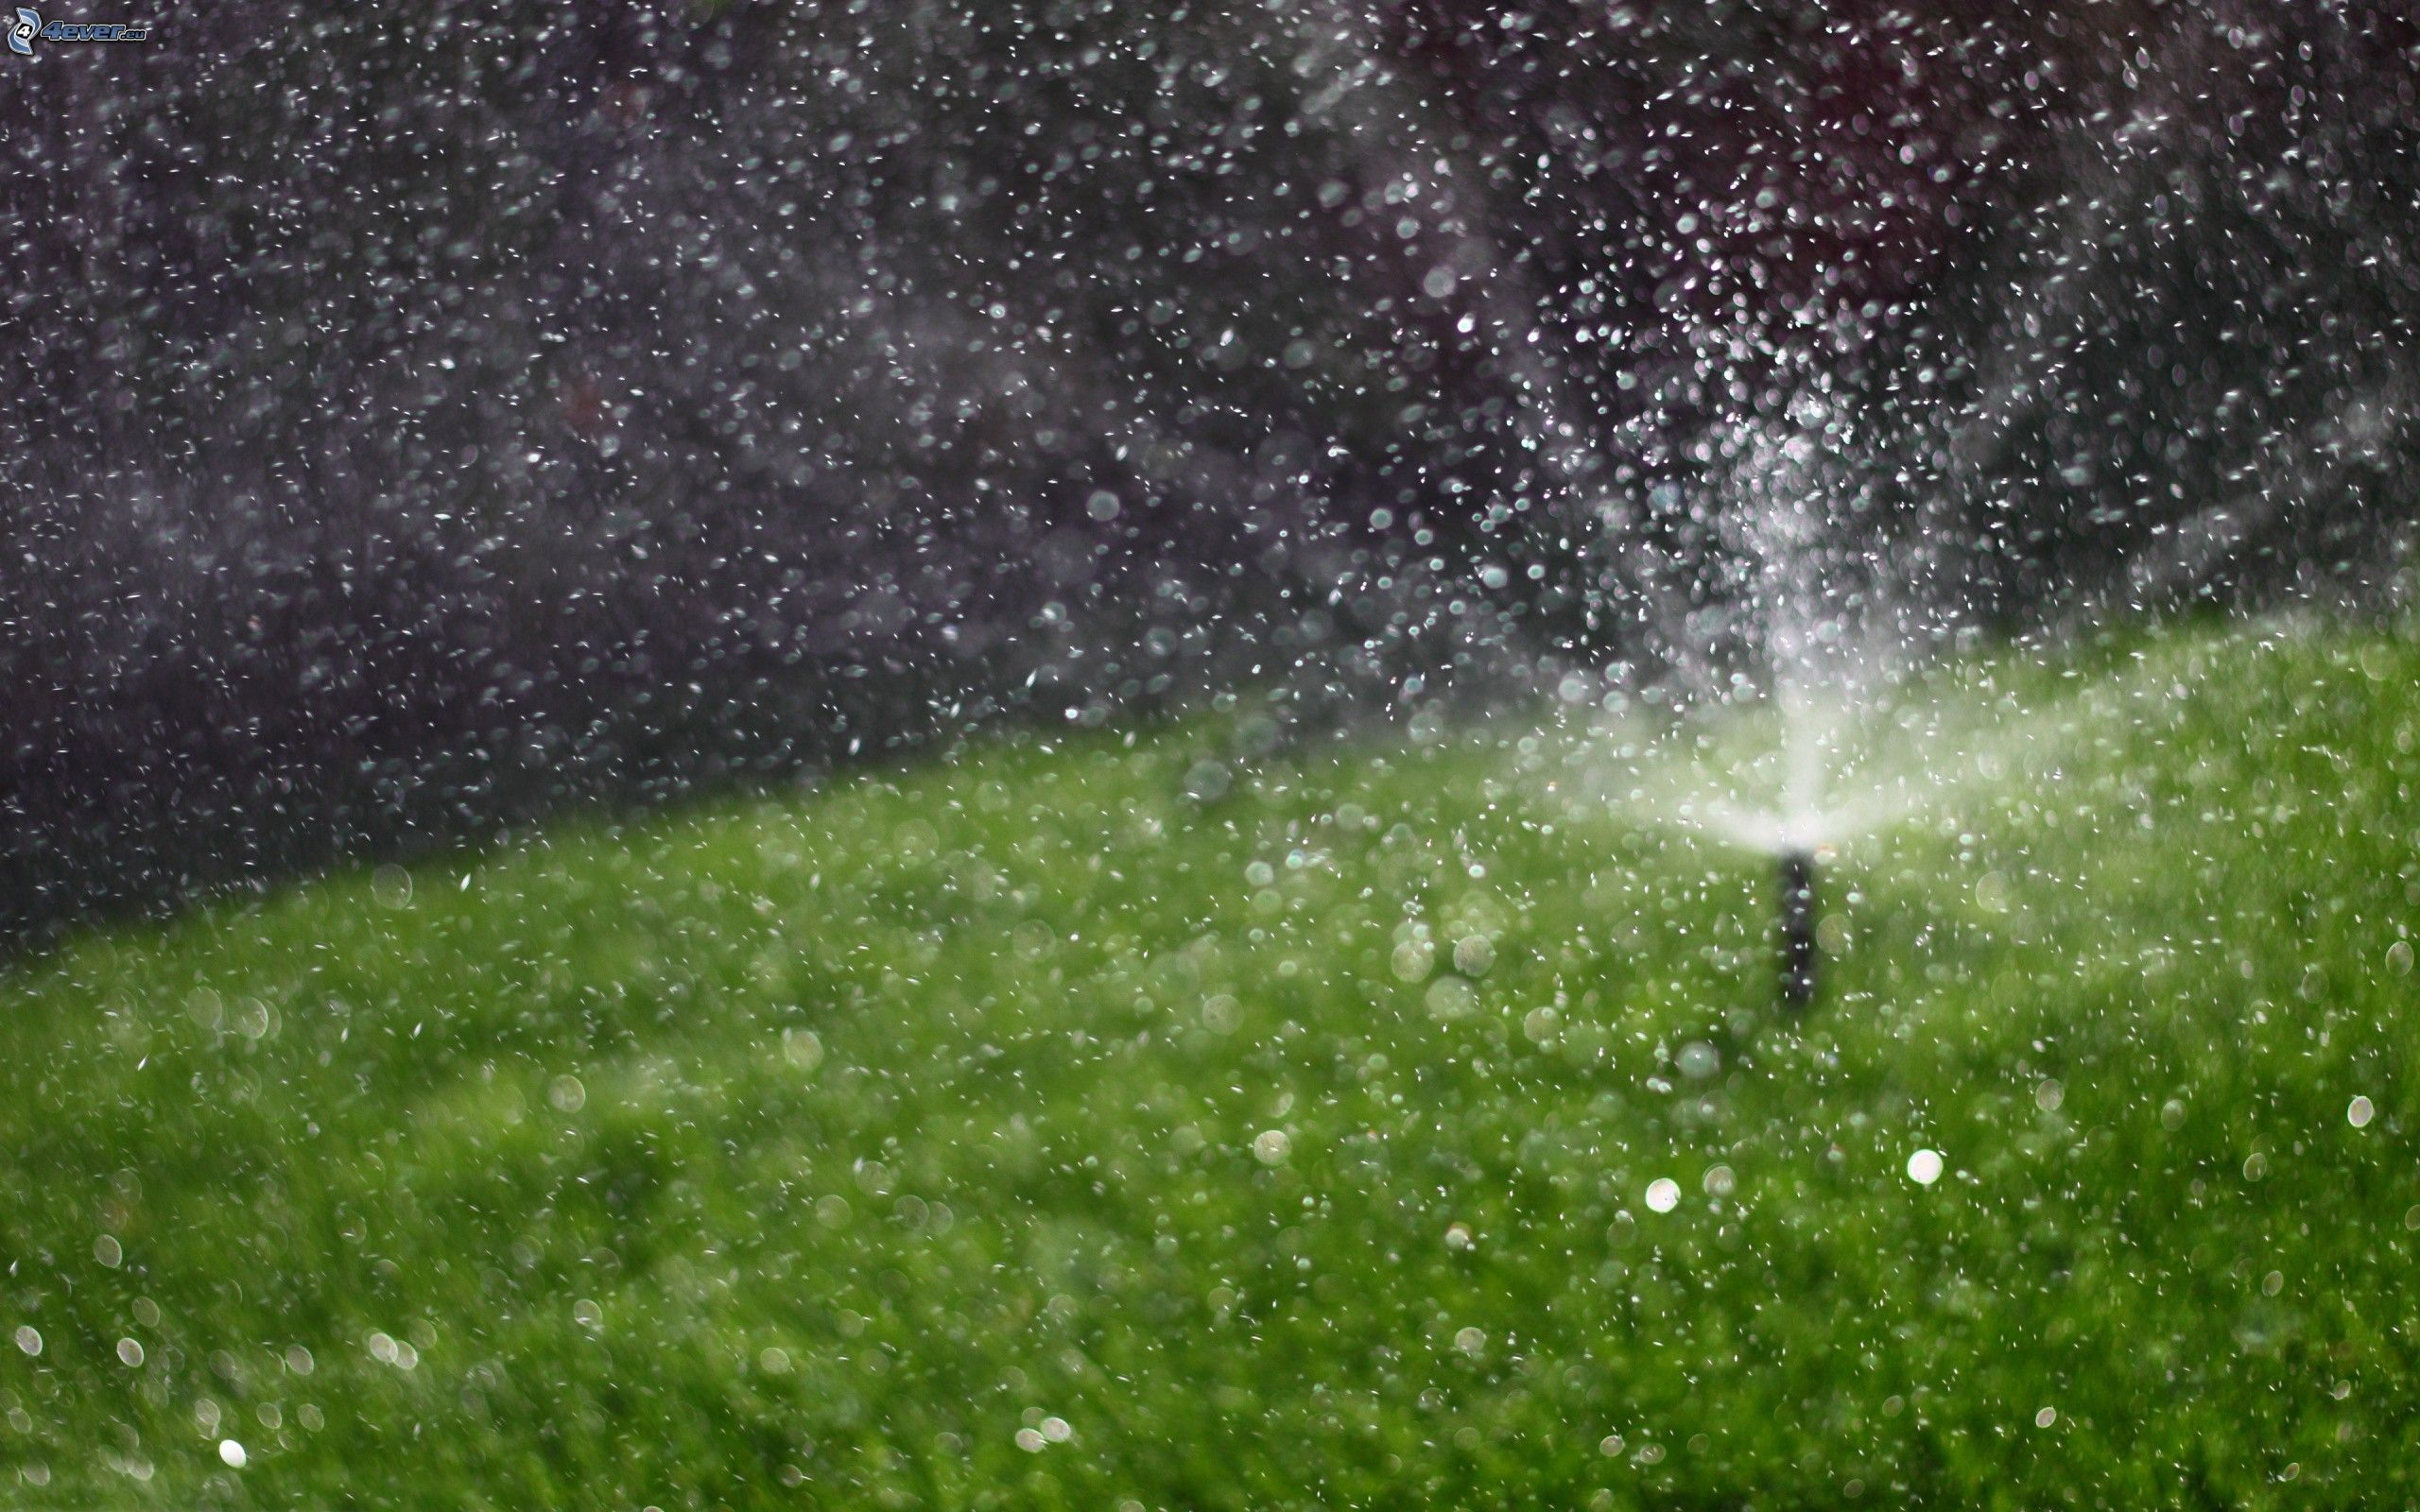 irrigation,-lawn,-drops-of-water-163459